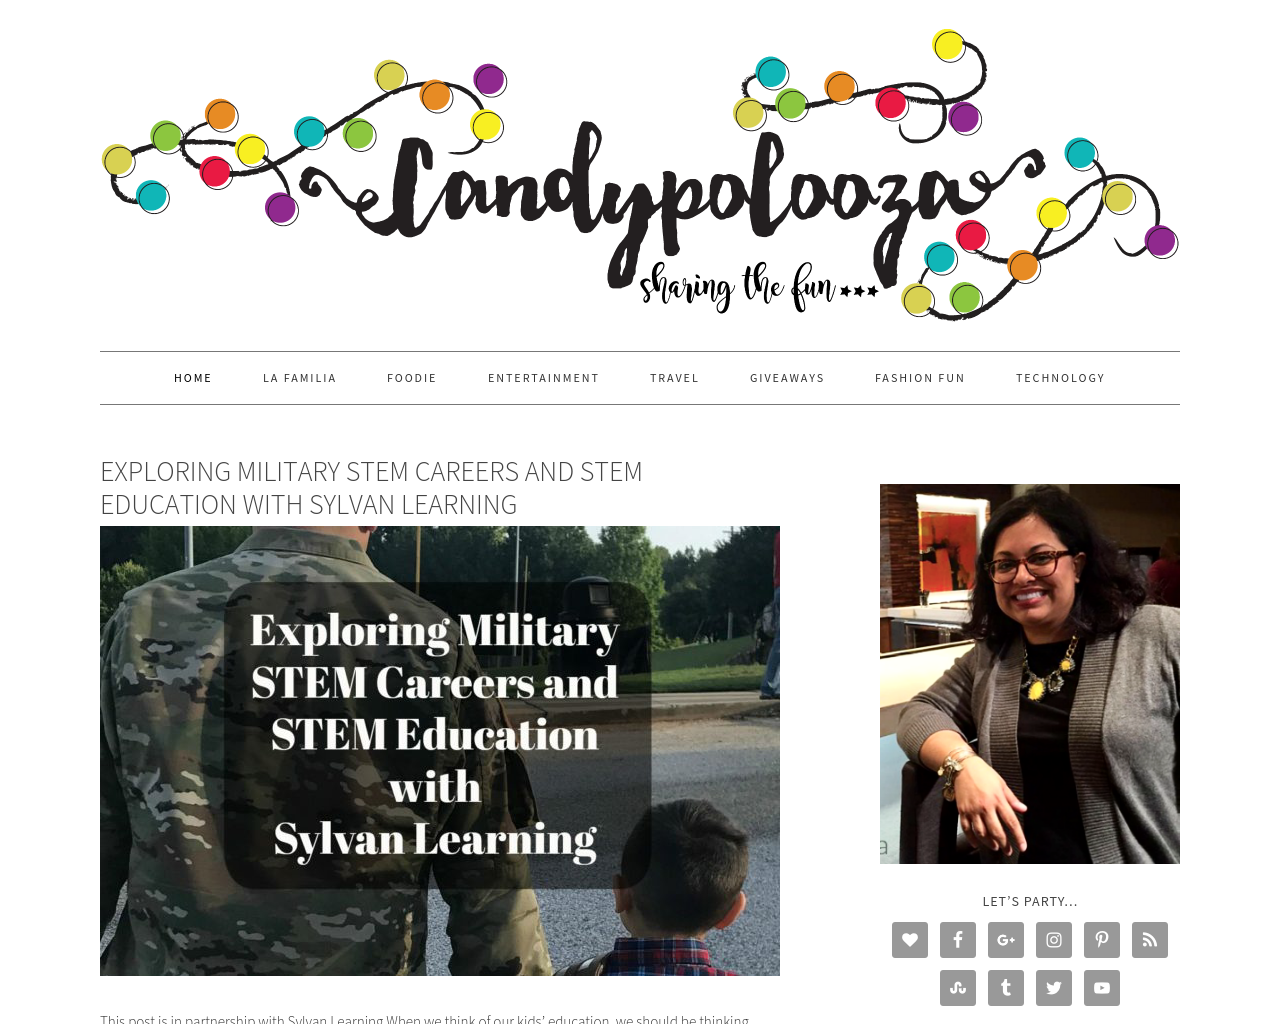 Candypolooza-Advertising-Reviews-Pricing